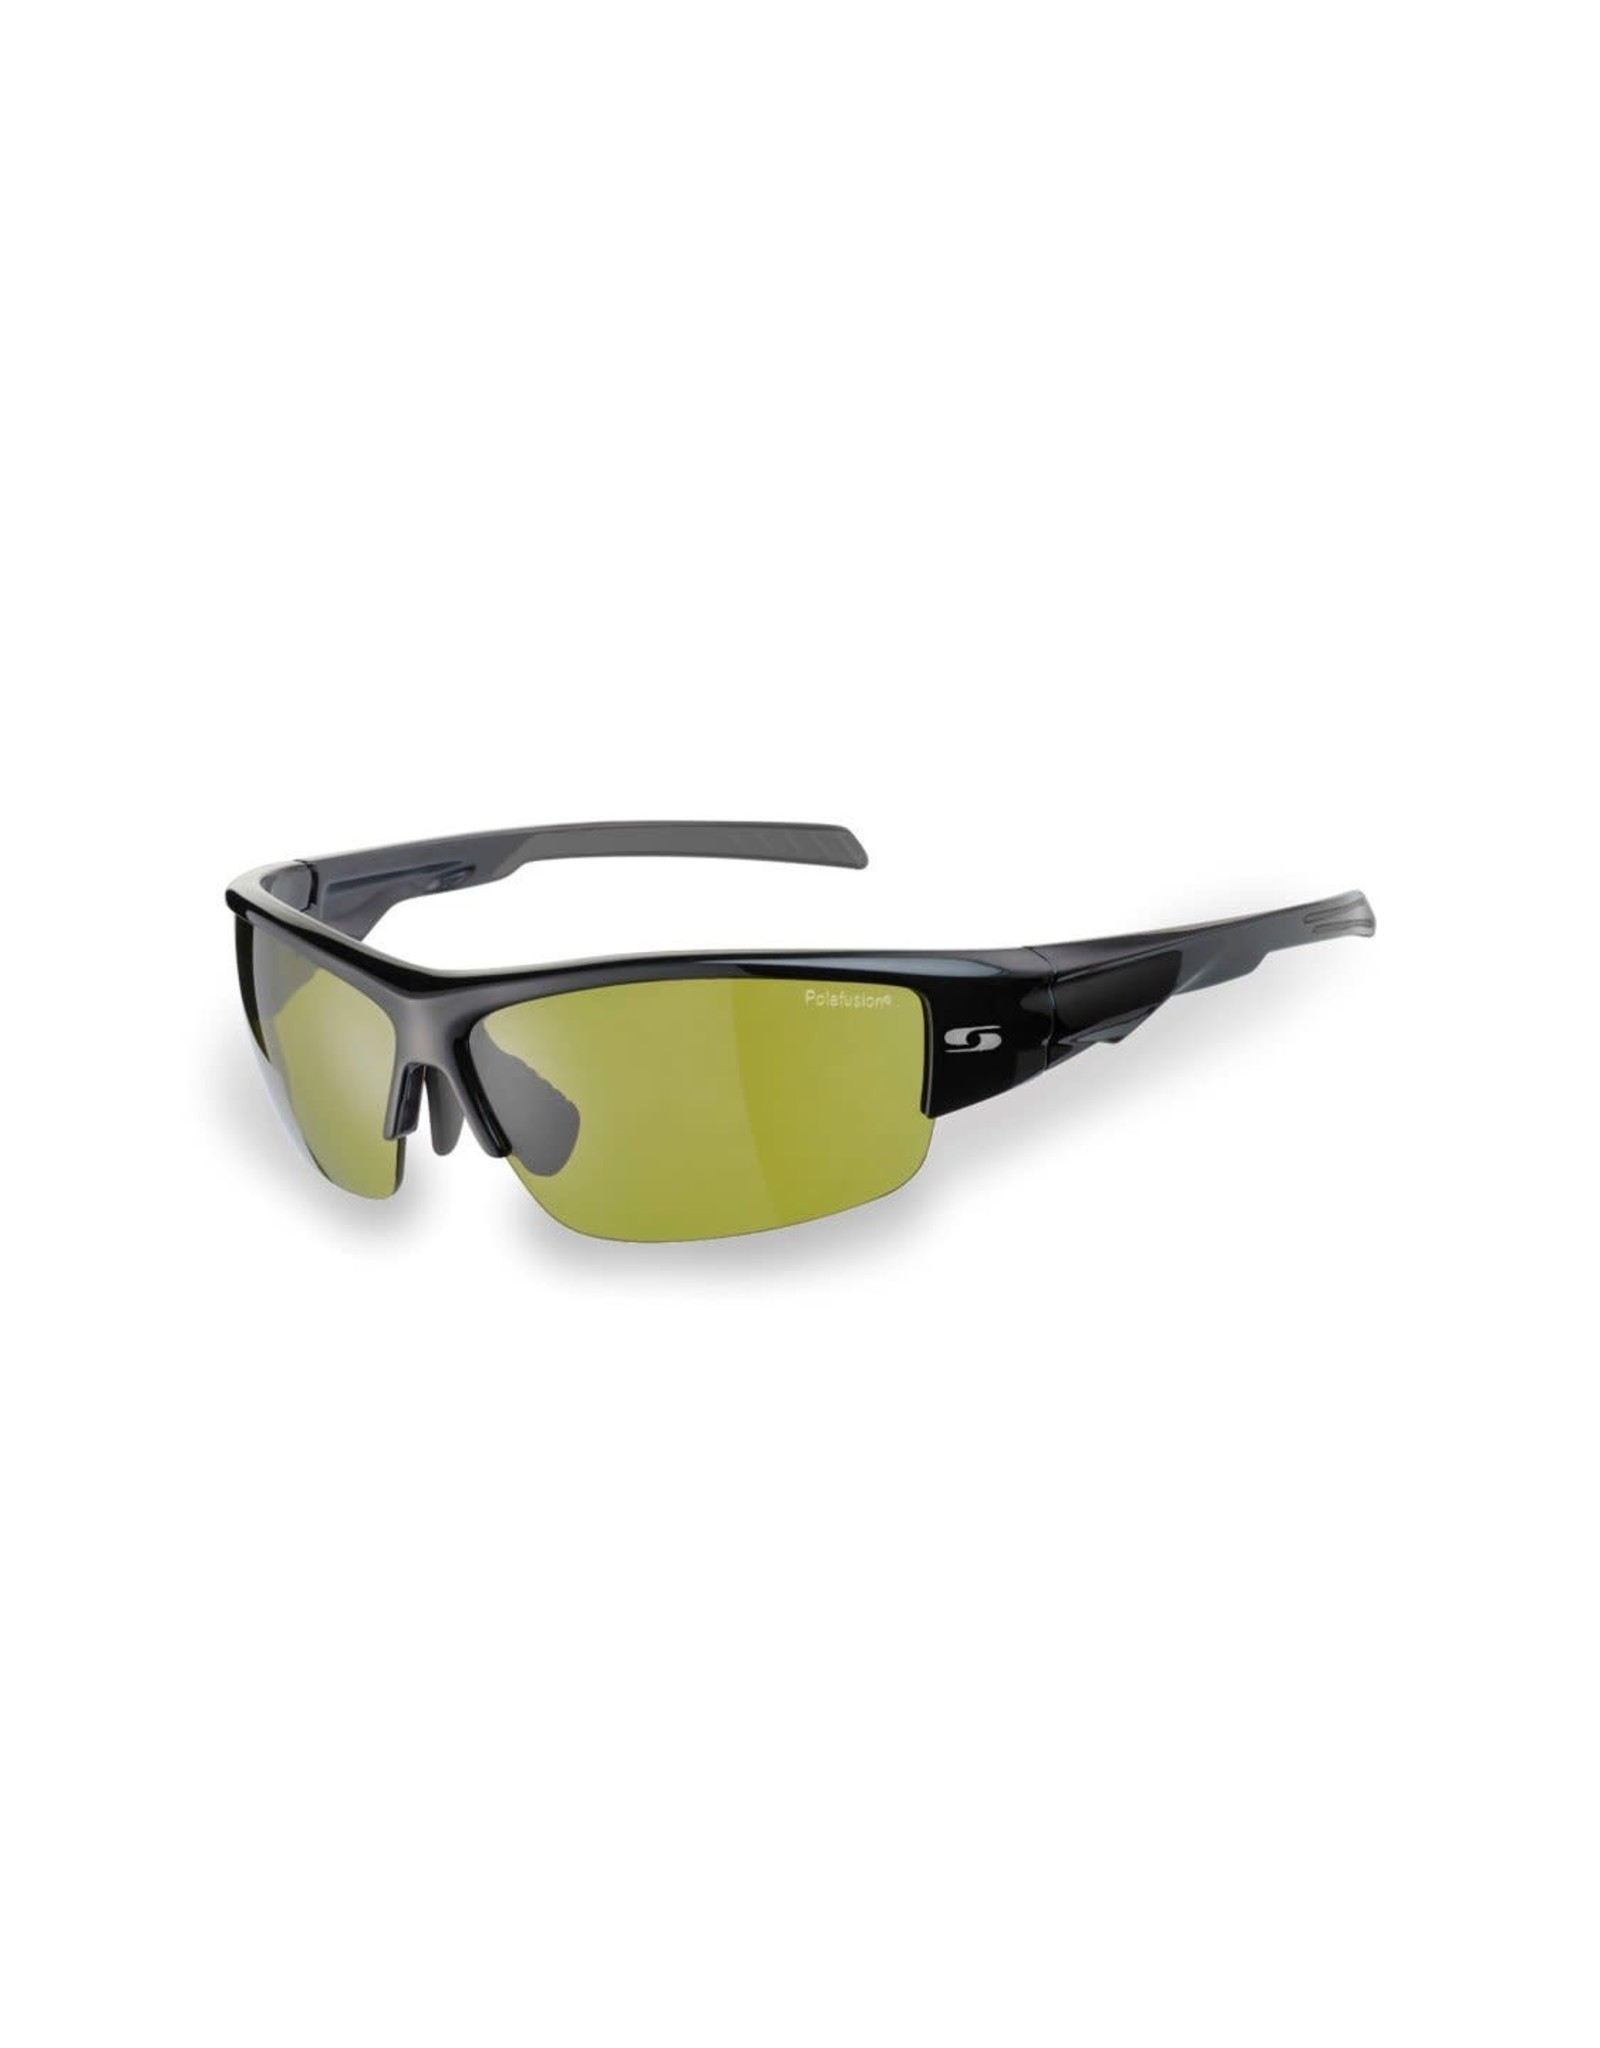 Sunwise Parade Sunglasses Black